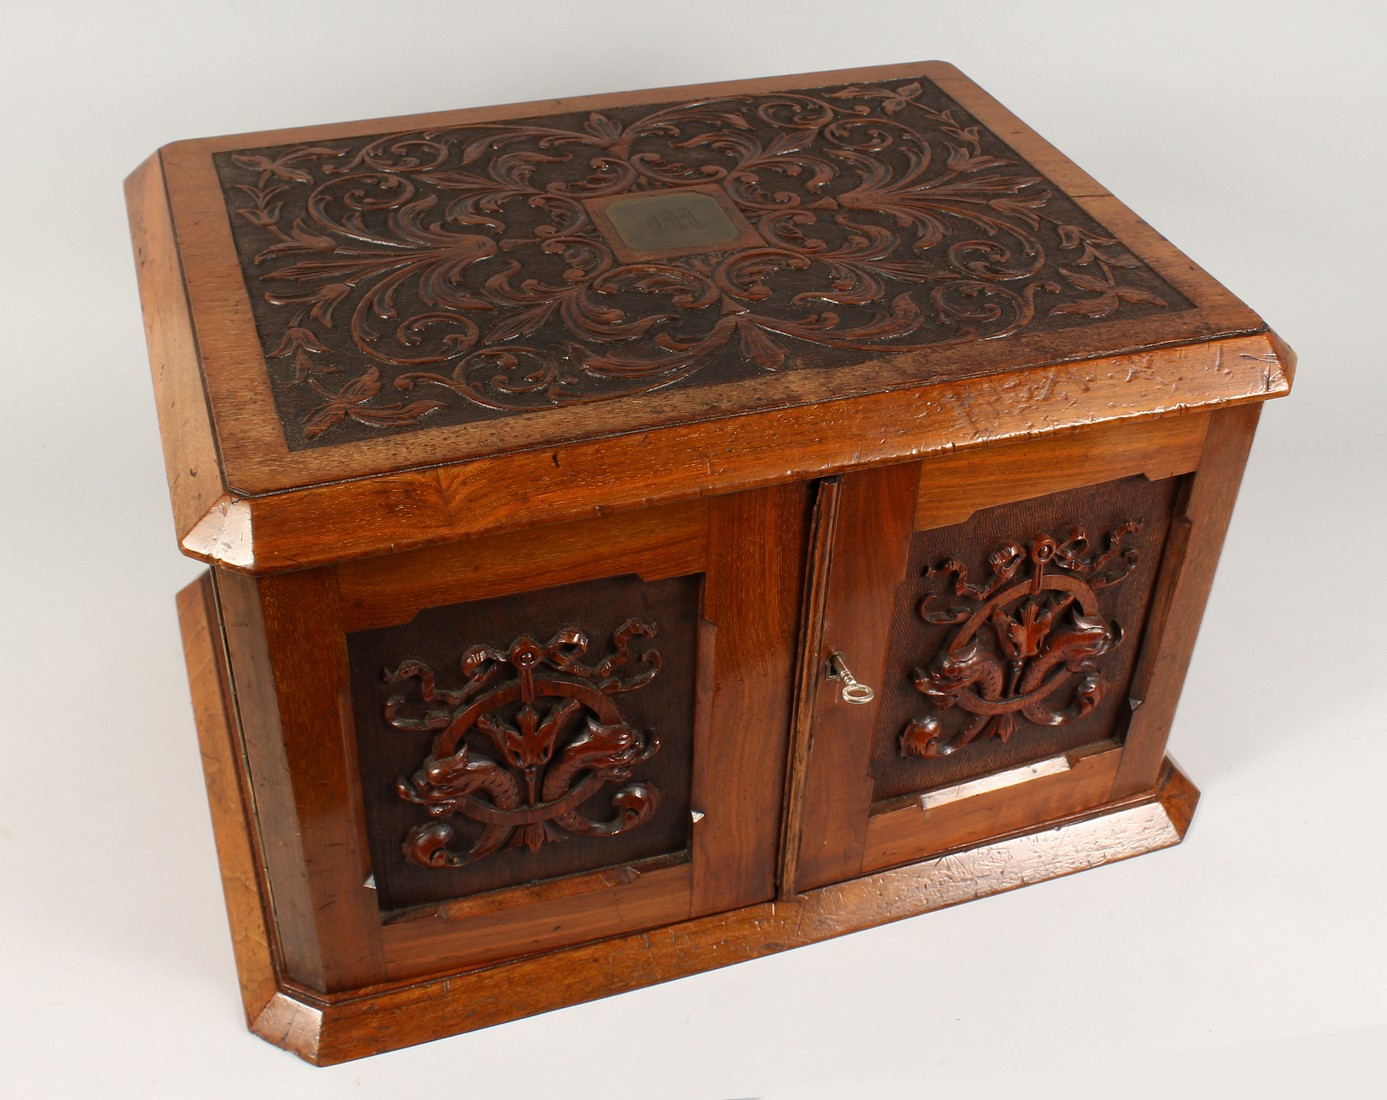 A GOOD VICTORIAN CARVED OVAL TABLE TOP CABINET, the top and doors with carved decoration, the